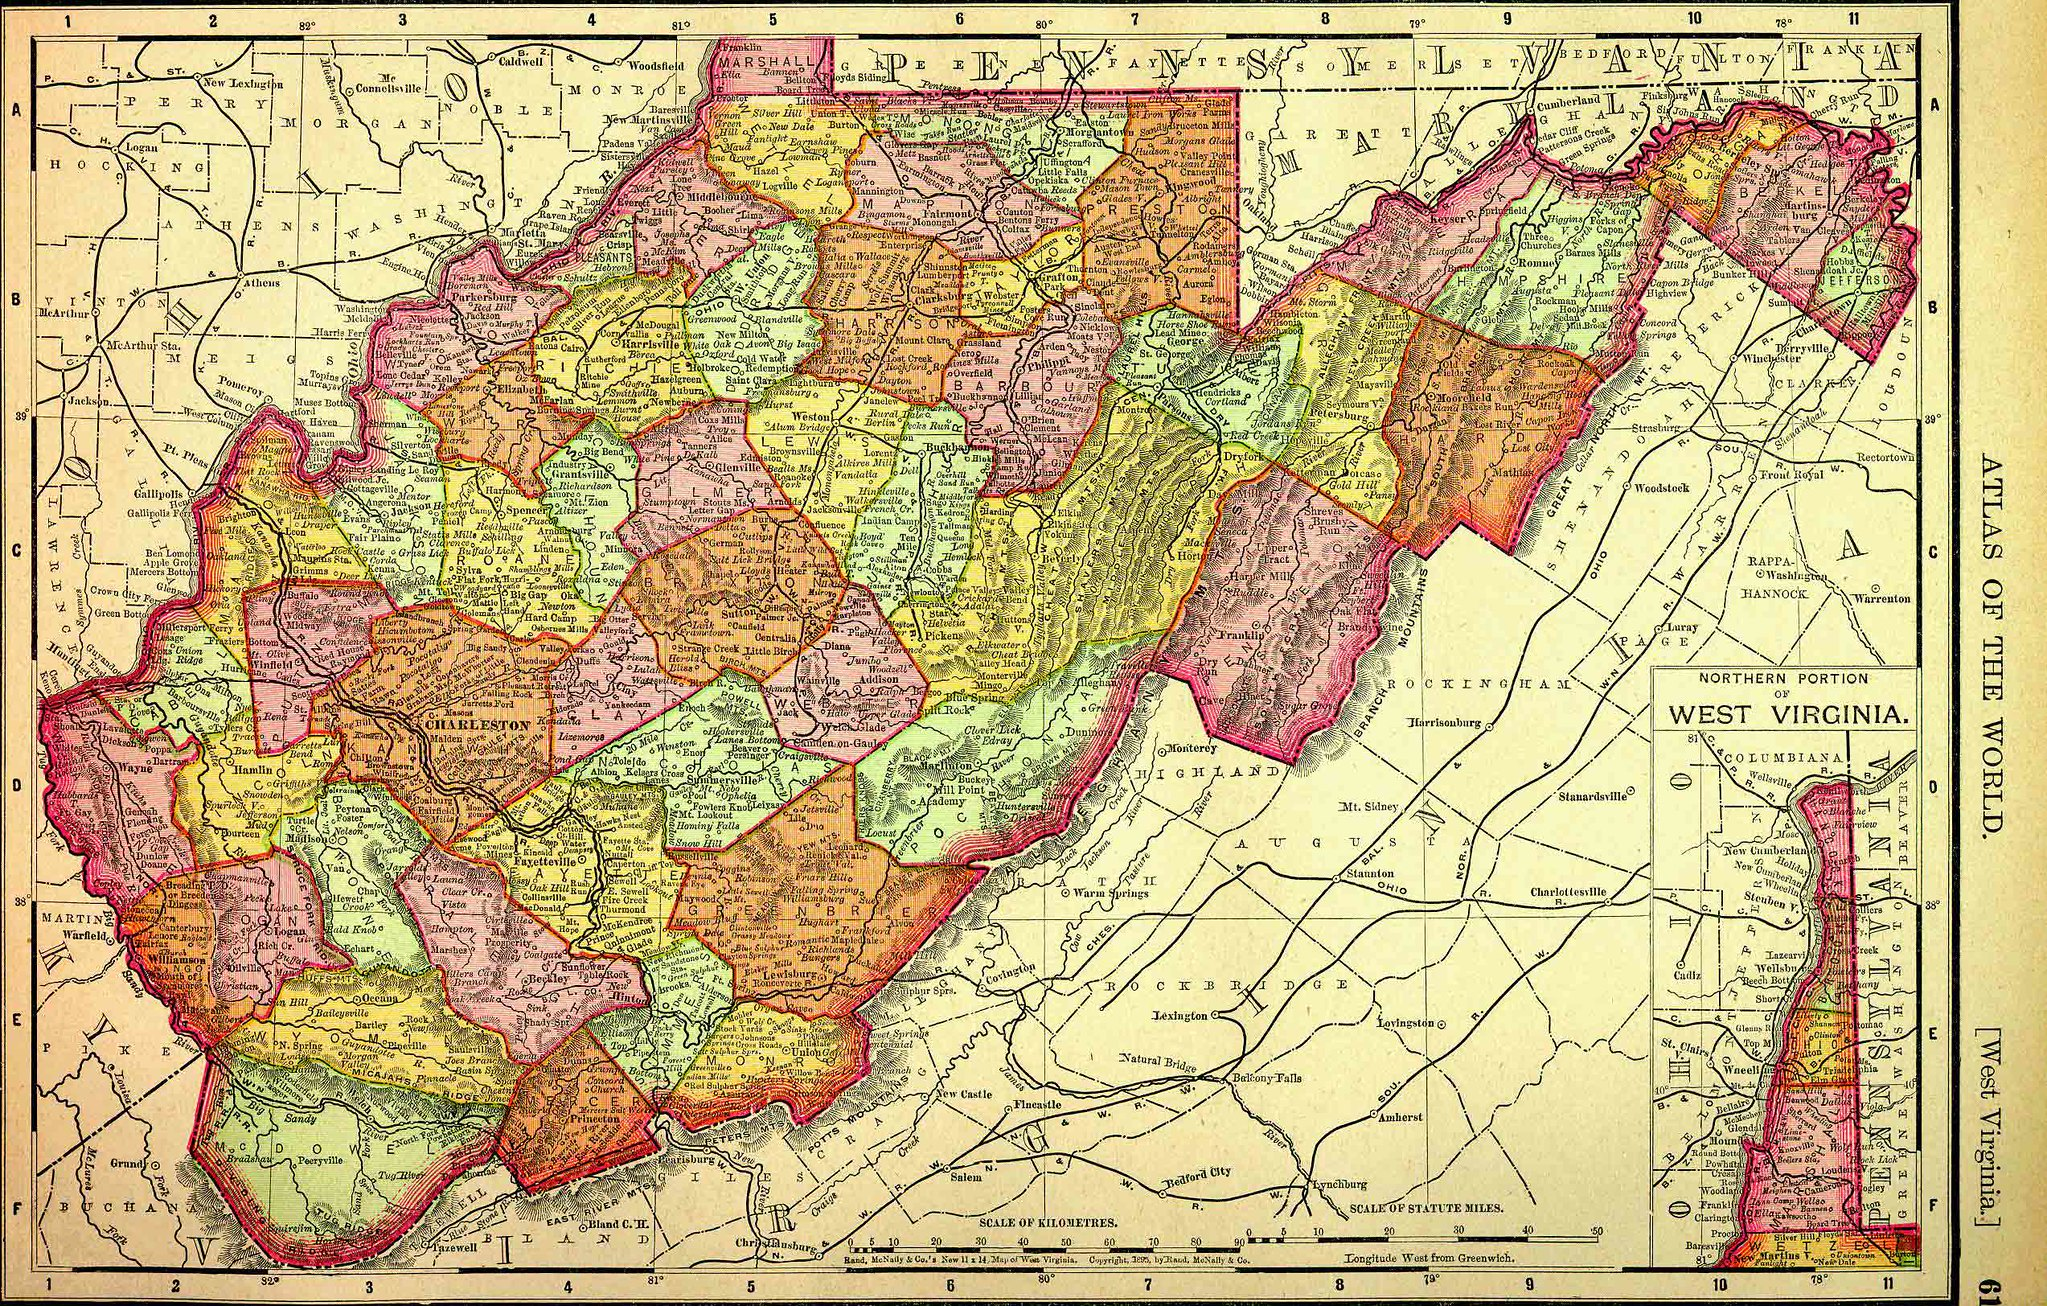 West Virginia map, 1895